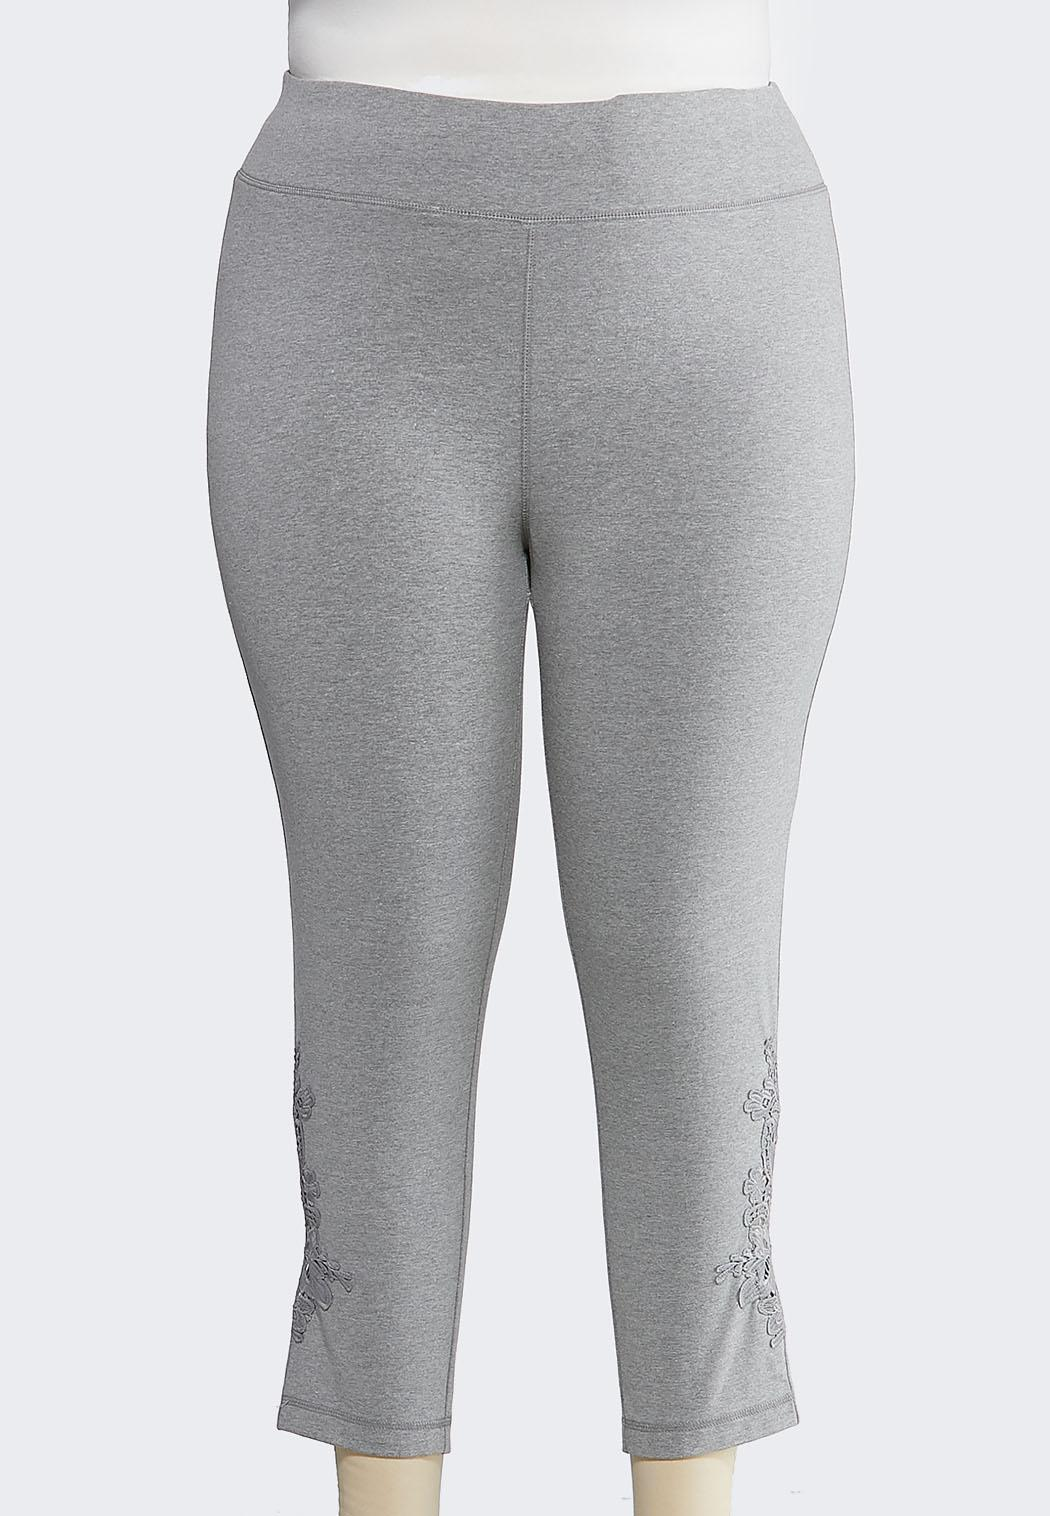 4df2e58cb Women's Plus Sized Leggings